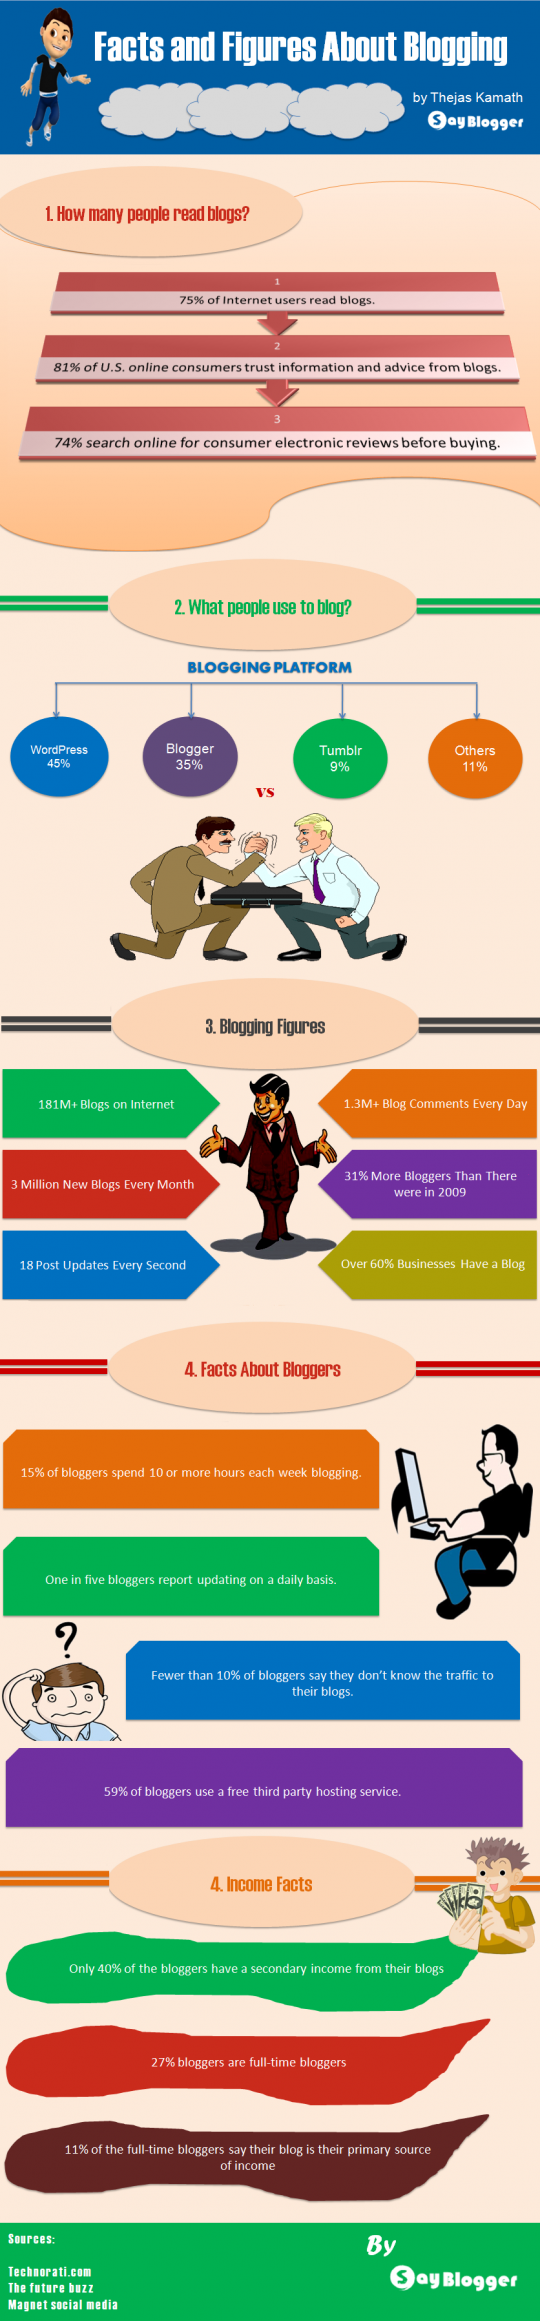 Facts and Figures About Blogging